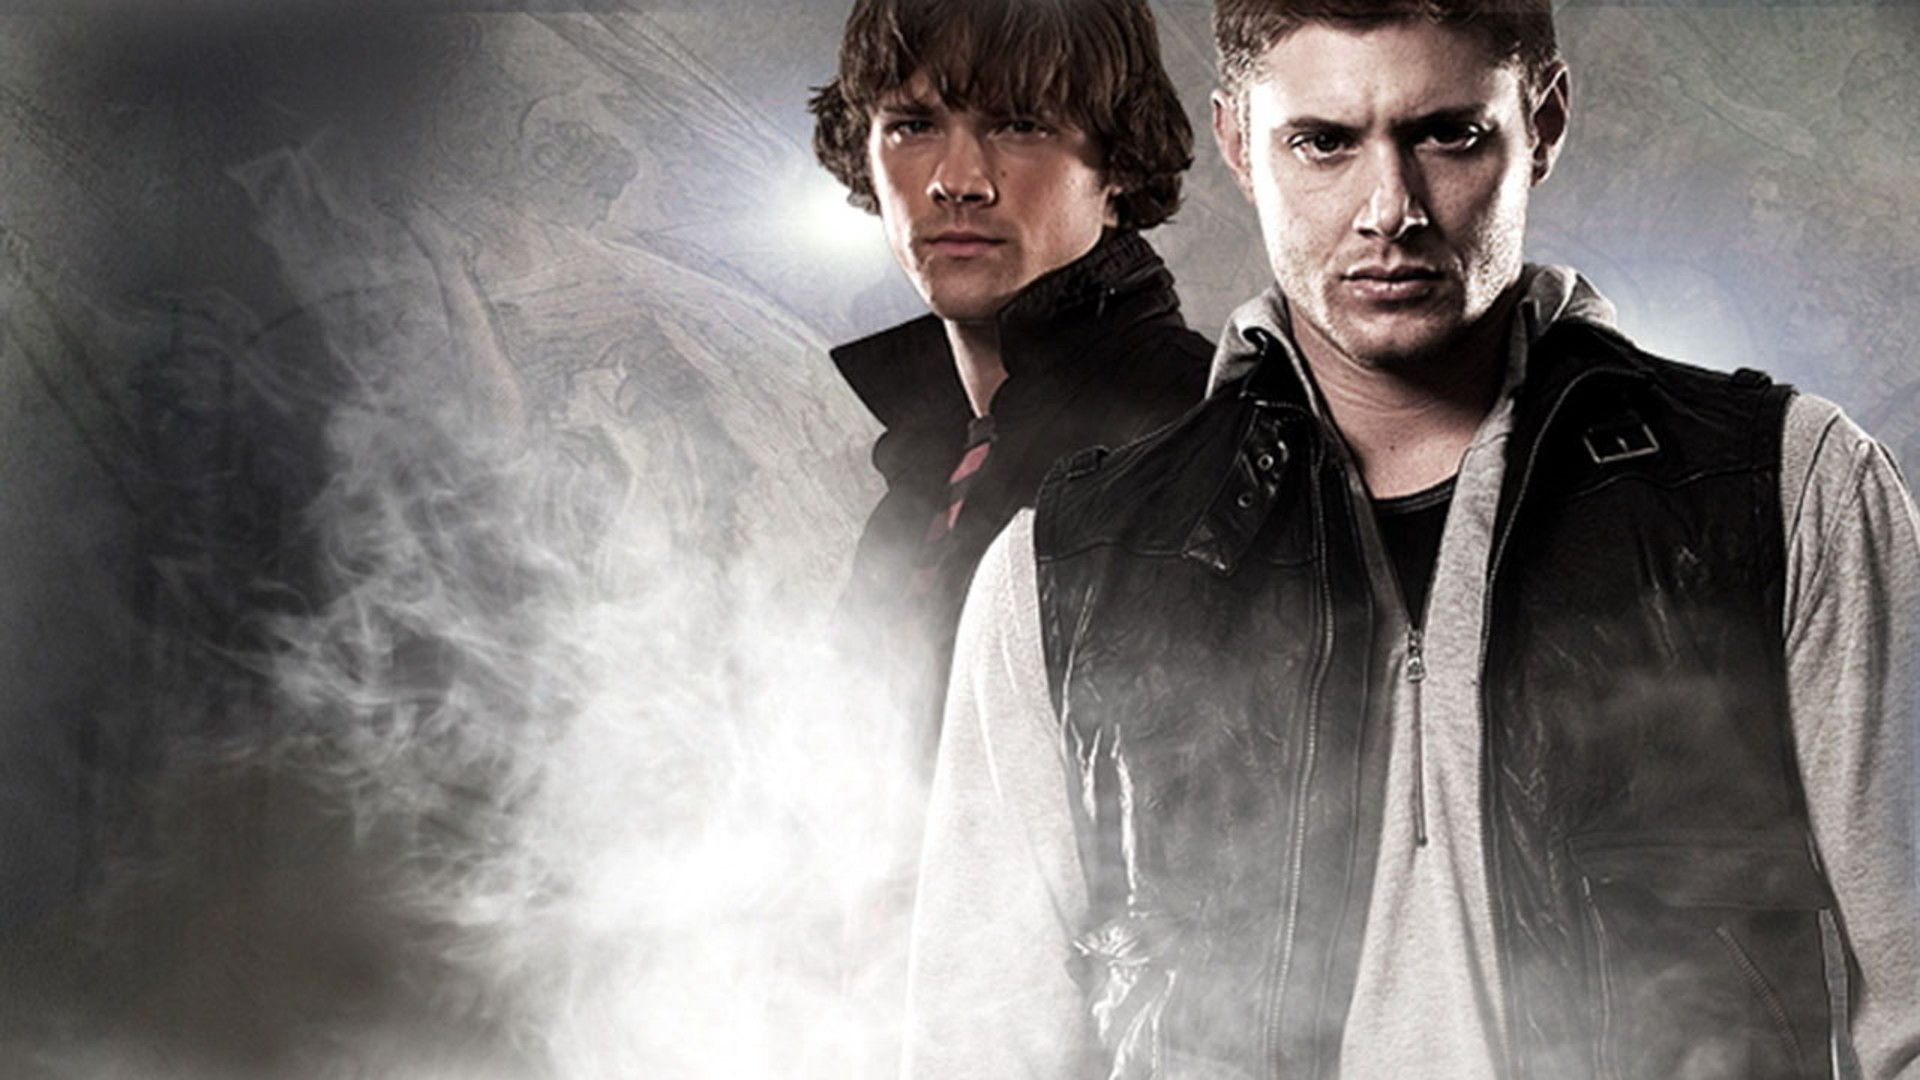 Supernatural Libros Supernatural Season 1 Episode 1 Pilot Watch